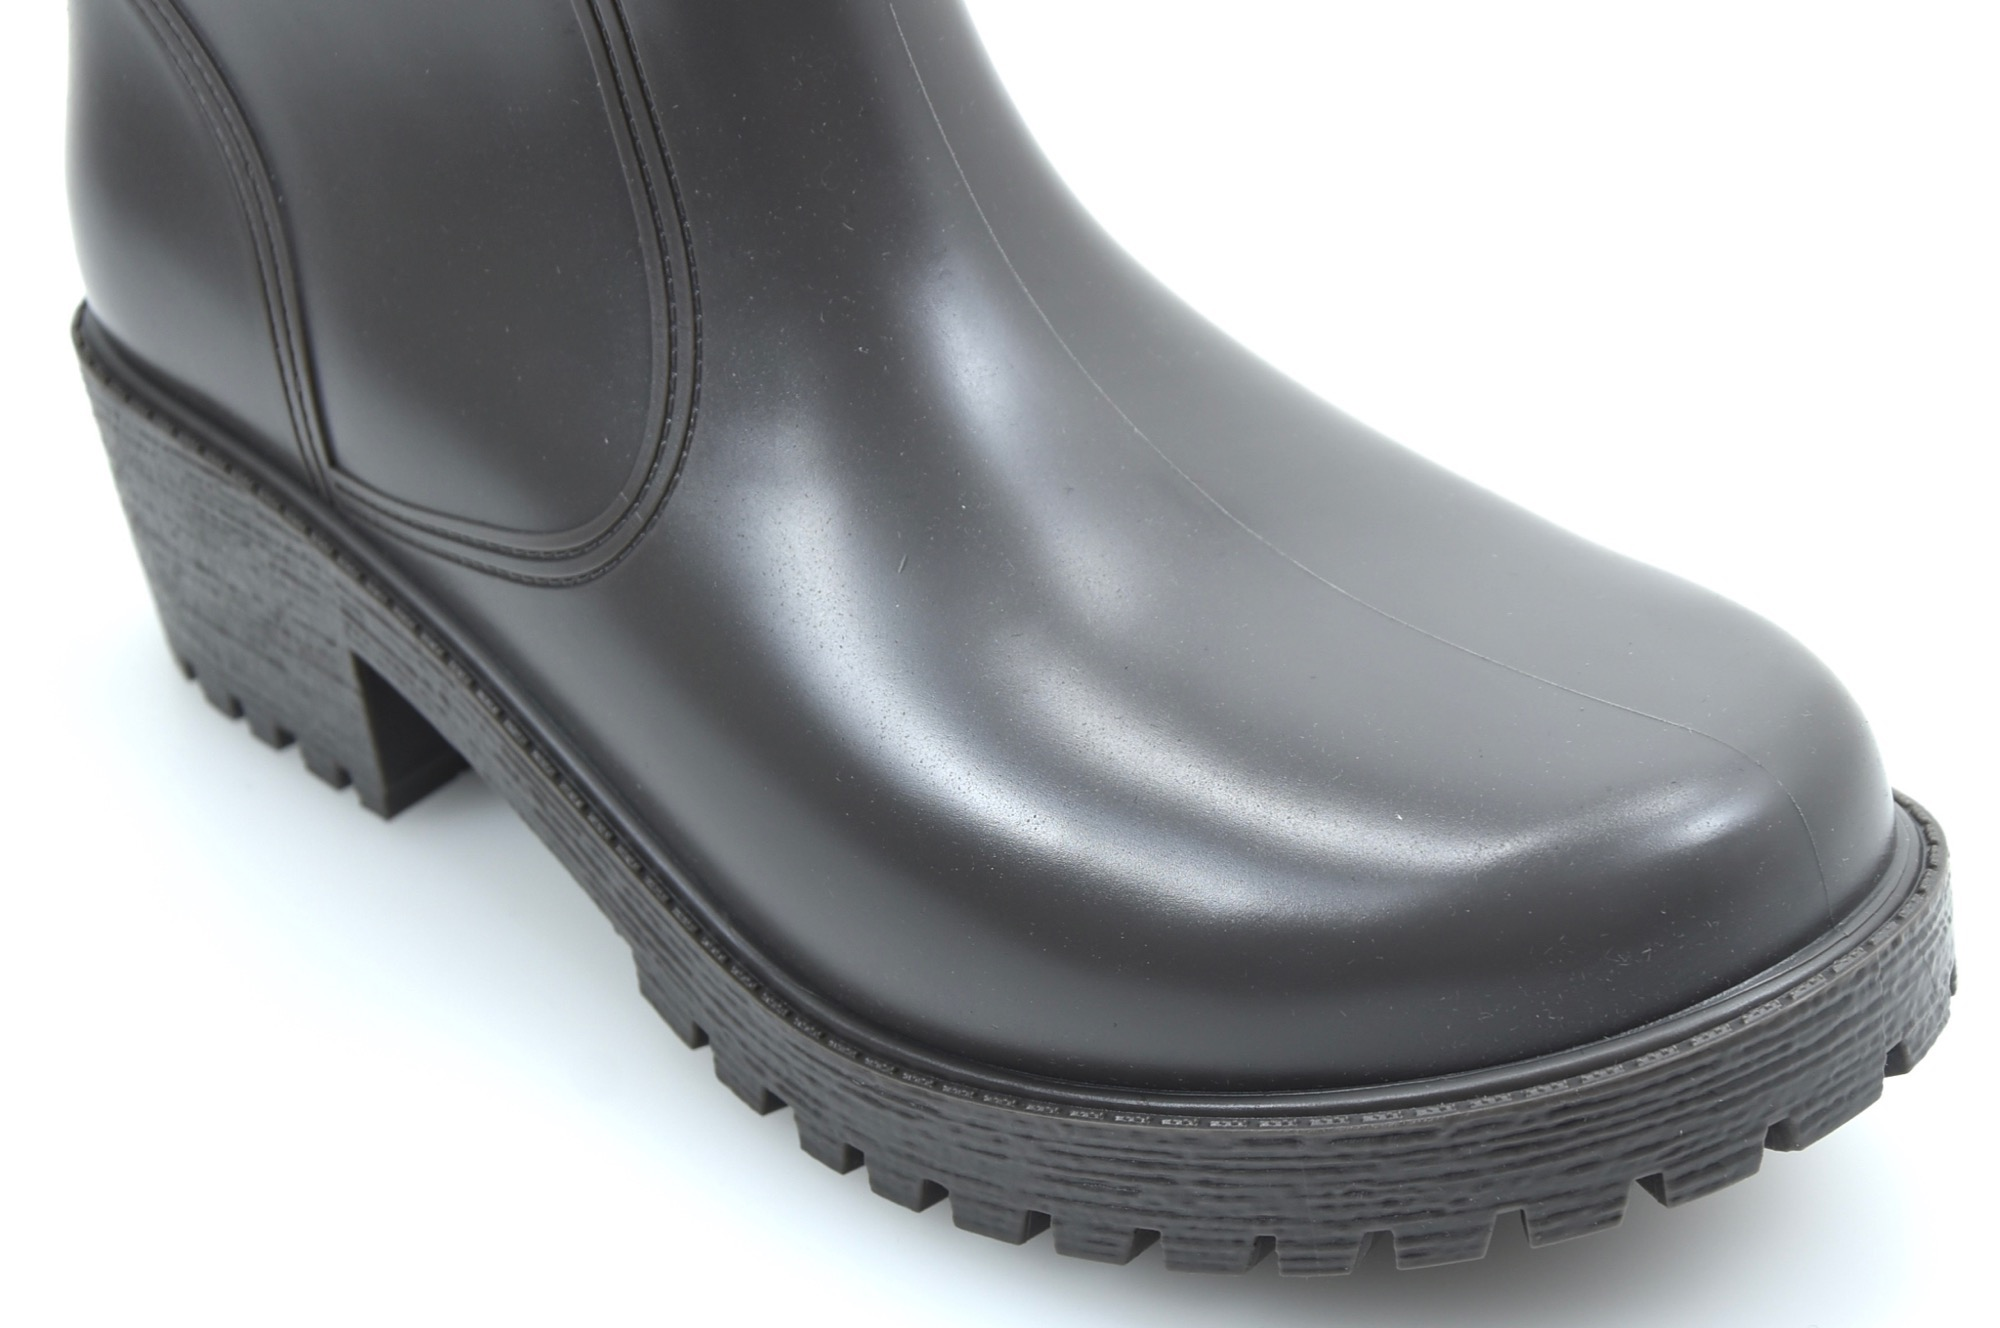 788db9d4 Details about ARMANI JEANS WOMAN RAIN BOOTS WELLINGTON BOOTS RUBBER MADE IN  ITALY CODE U5587